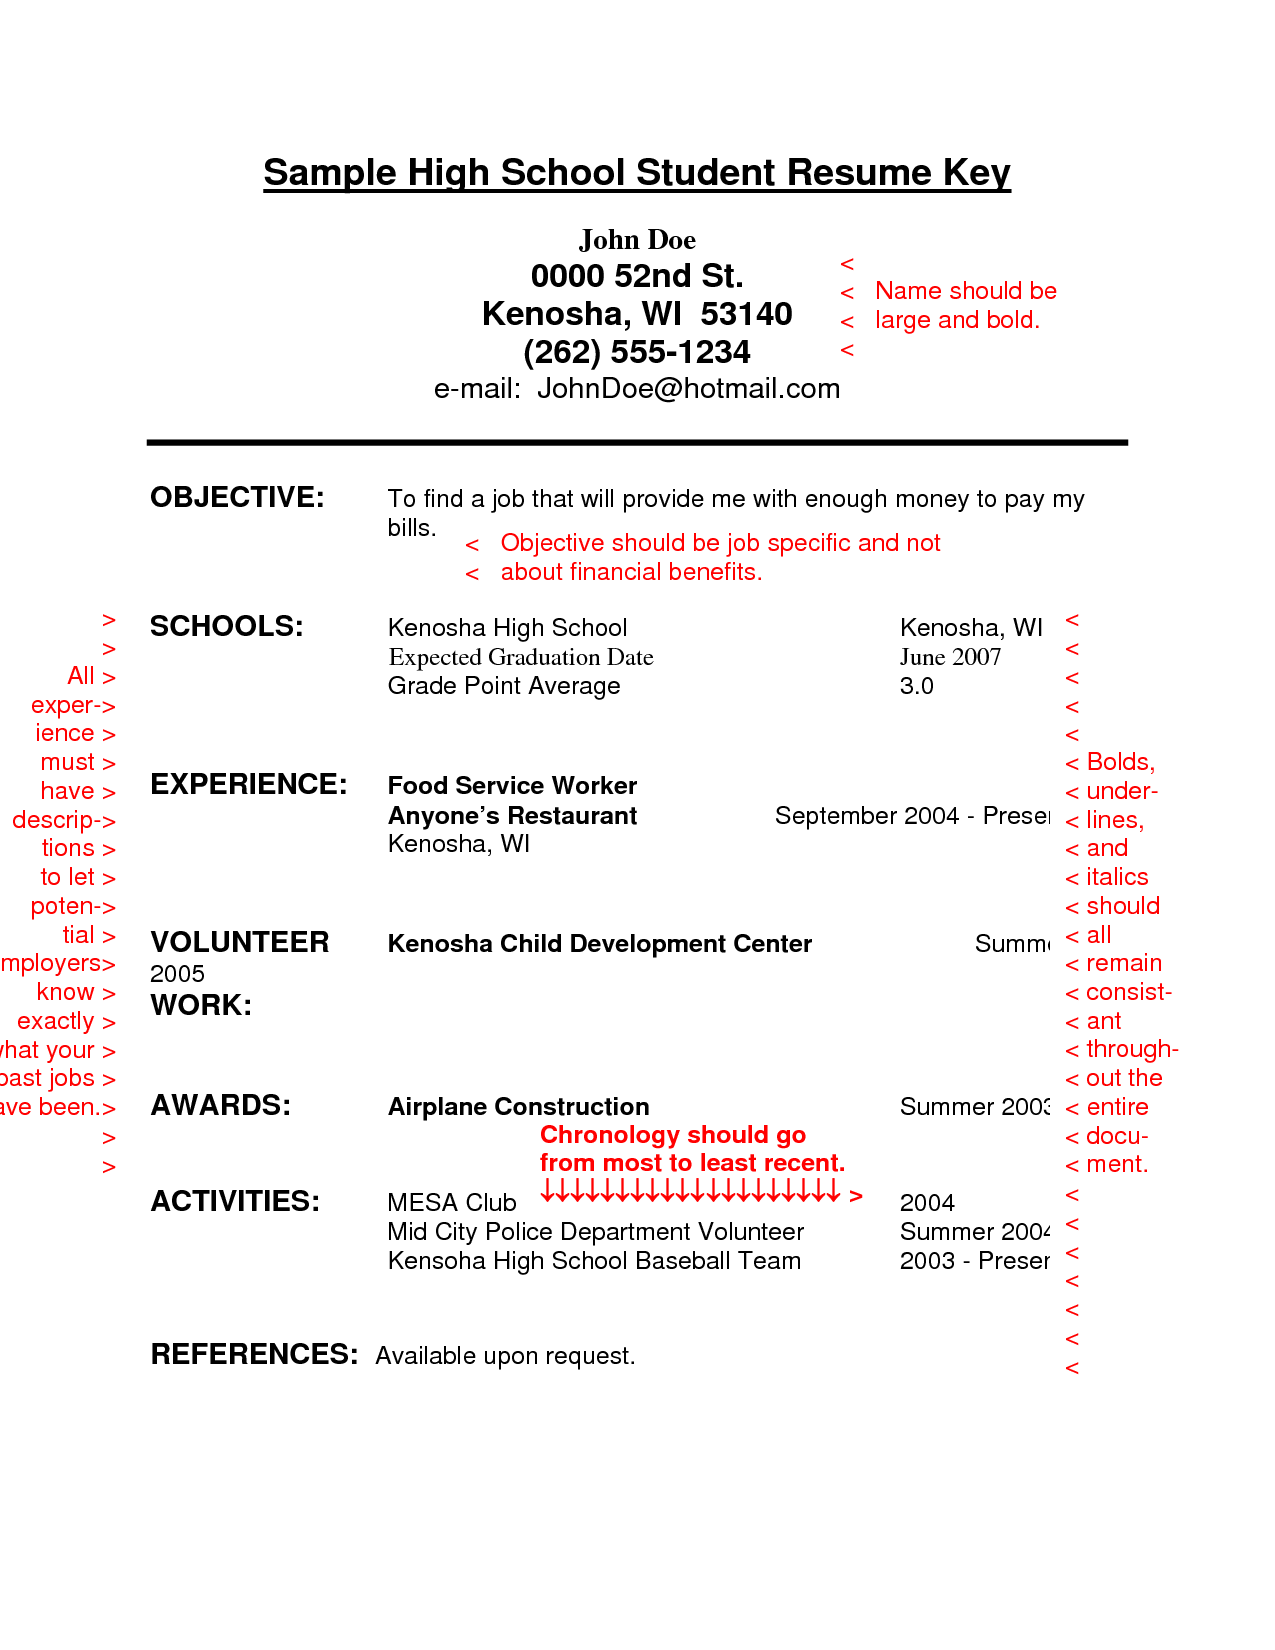 Sample Resume Template Resume Sample For High School Students With No Experience  Http